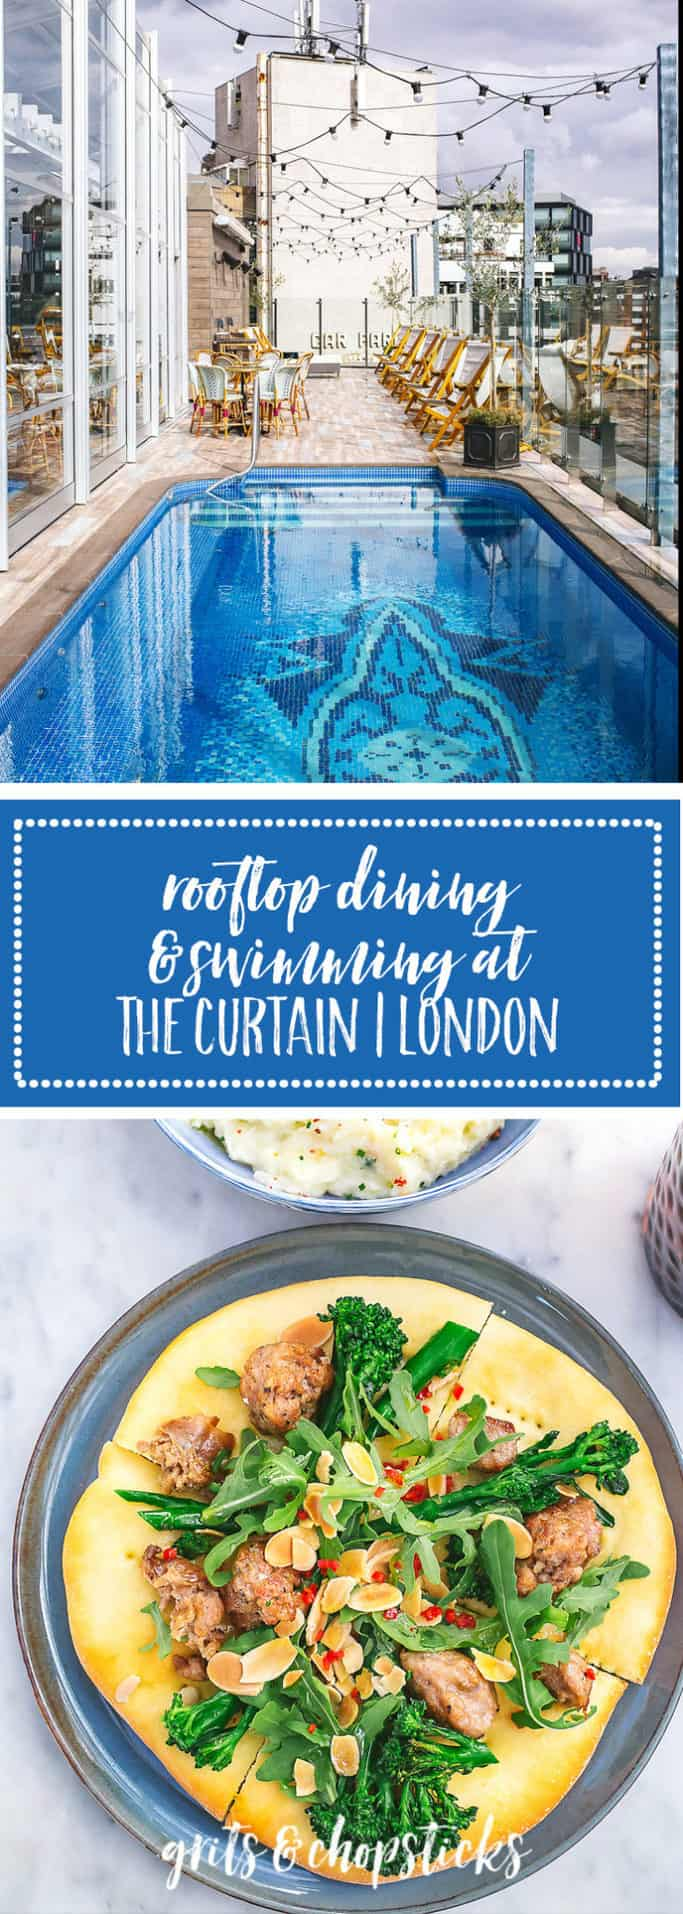 Visit The Curtain in Shoreditch, London, a new boutique hotel with a guests and members only swimming pool and Marcus Samuelsson restaurants!